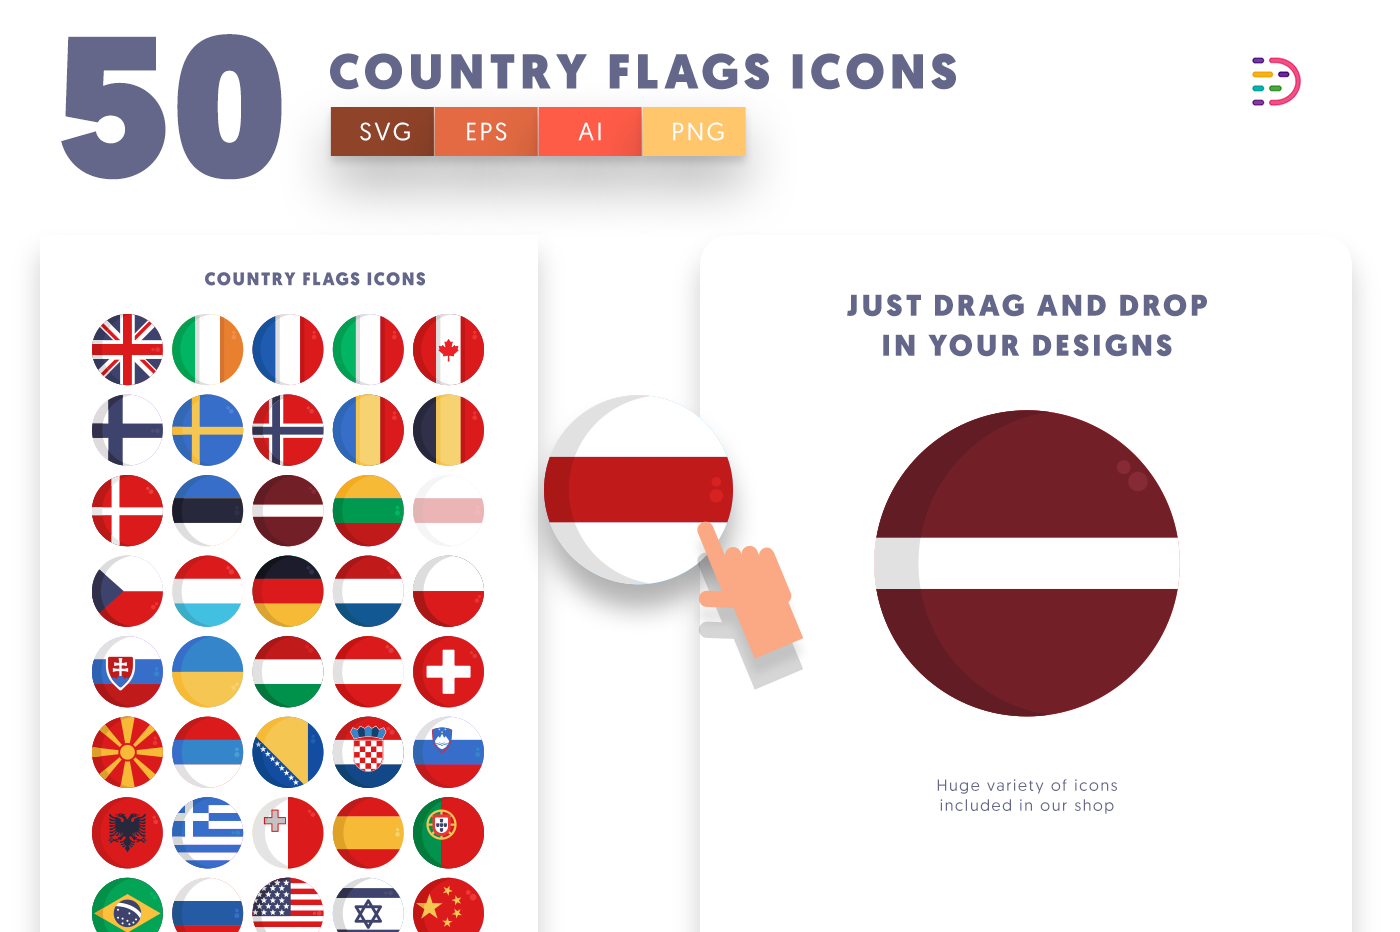 Drag and drop vector 50 Country Flags Icons